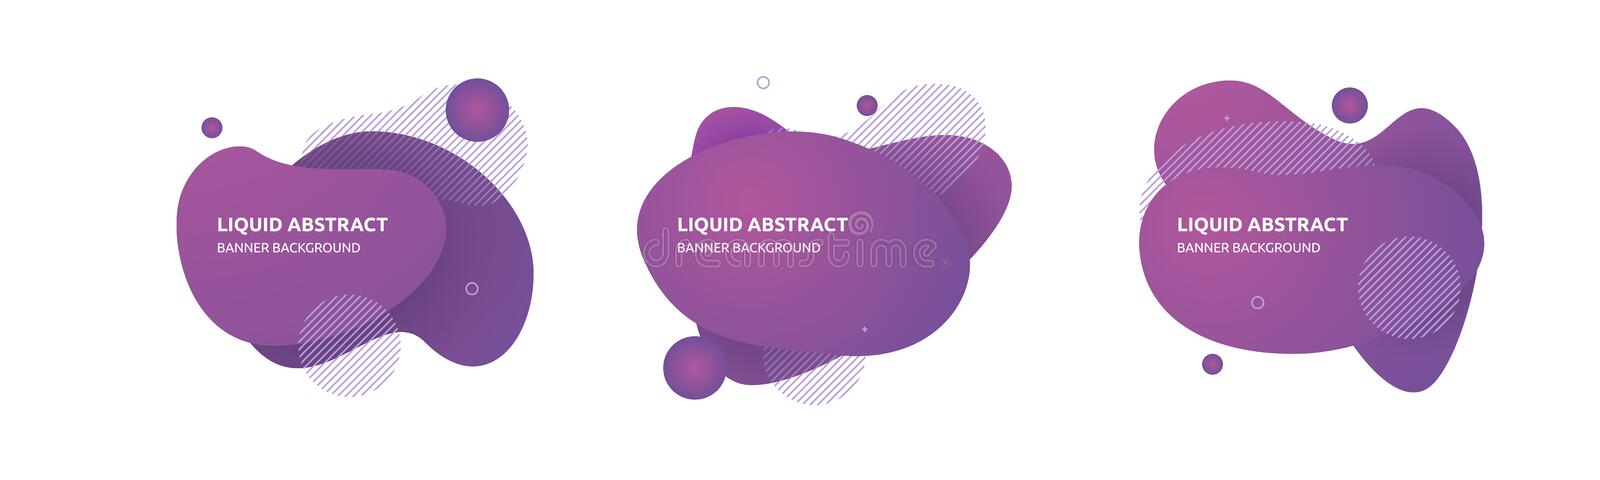 Set of abstract backgrounds with liquid shapes vector illustration